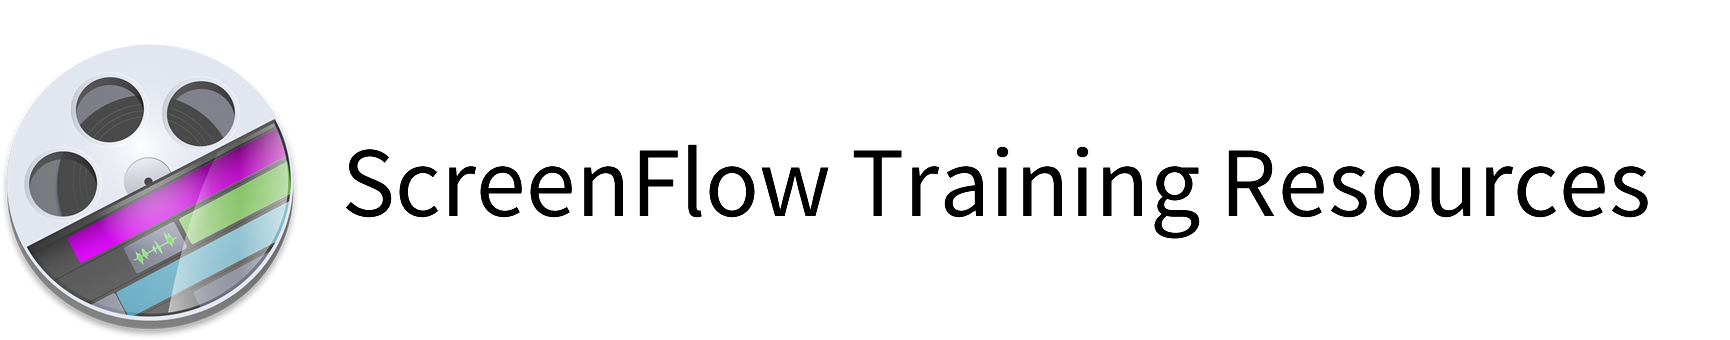 Telestream ScreenFlow - Support - Training